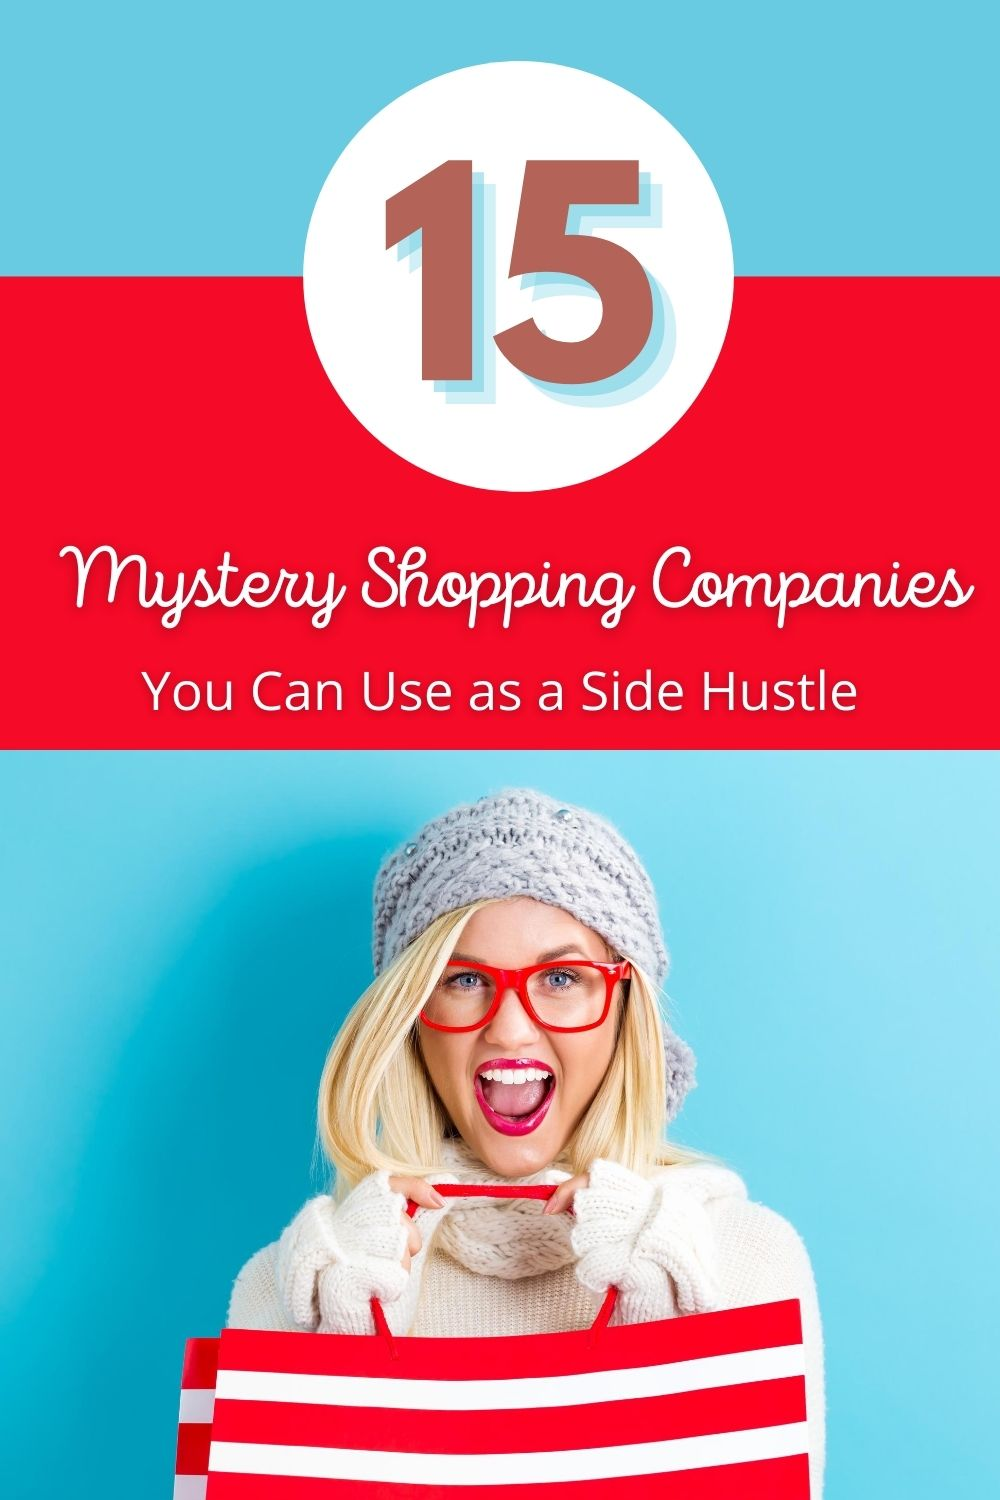 15 Mystery Shopping Companies You Can Use as a Side Hustle